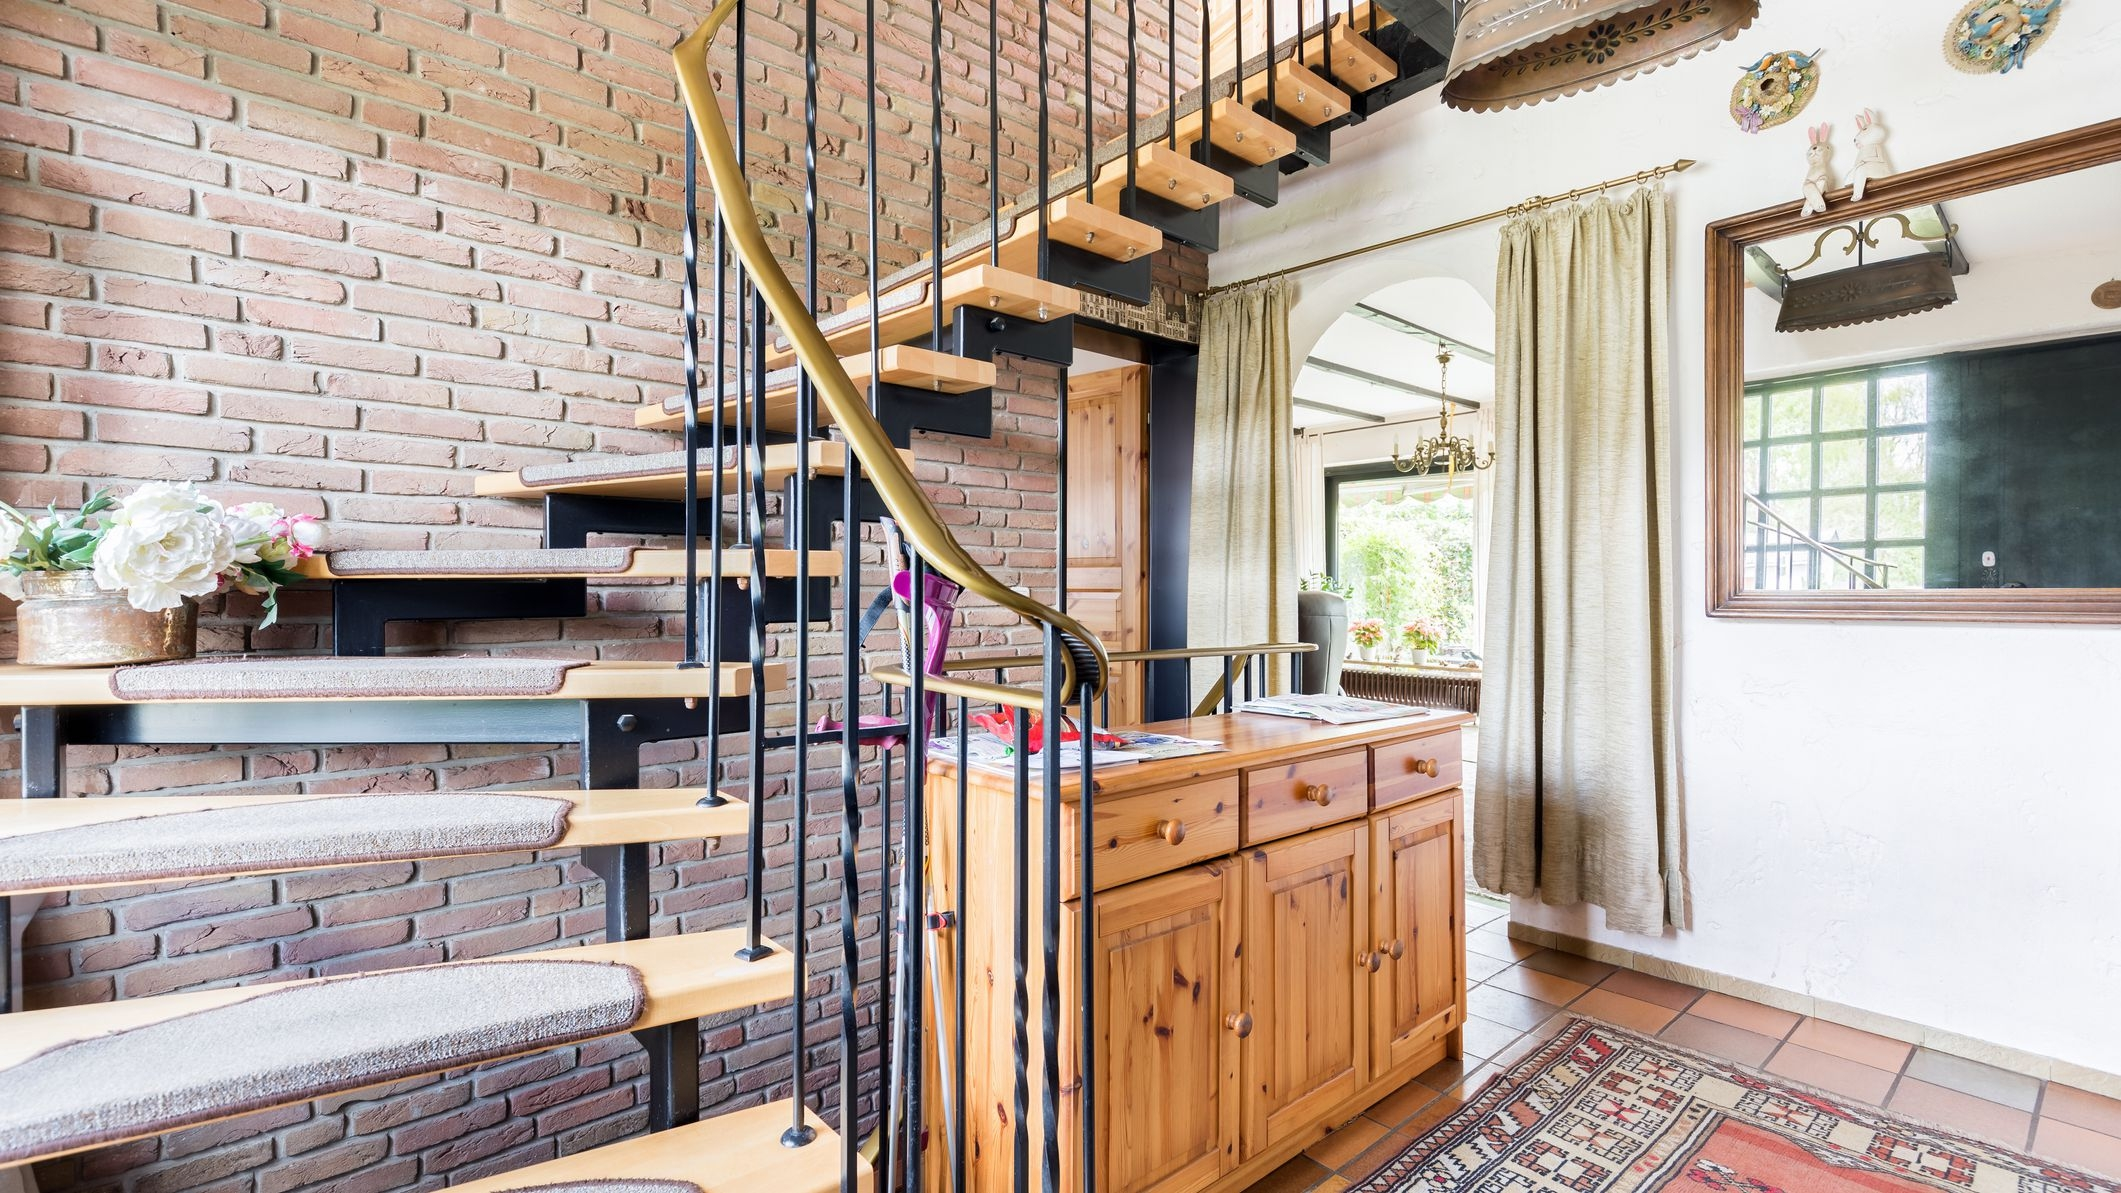 4 Decorative Ways To Dress Up A Stairway | Staircase Railing Designs For Your Home | Contemporary | Extraordinary | Country Home Interior | Eye Catching | Covered